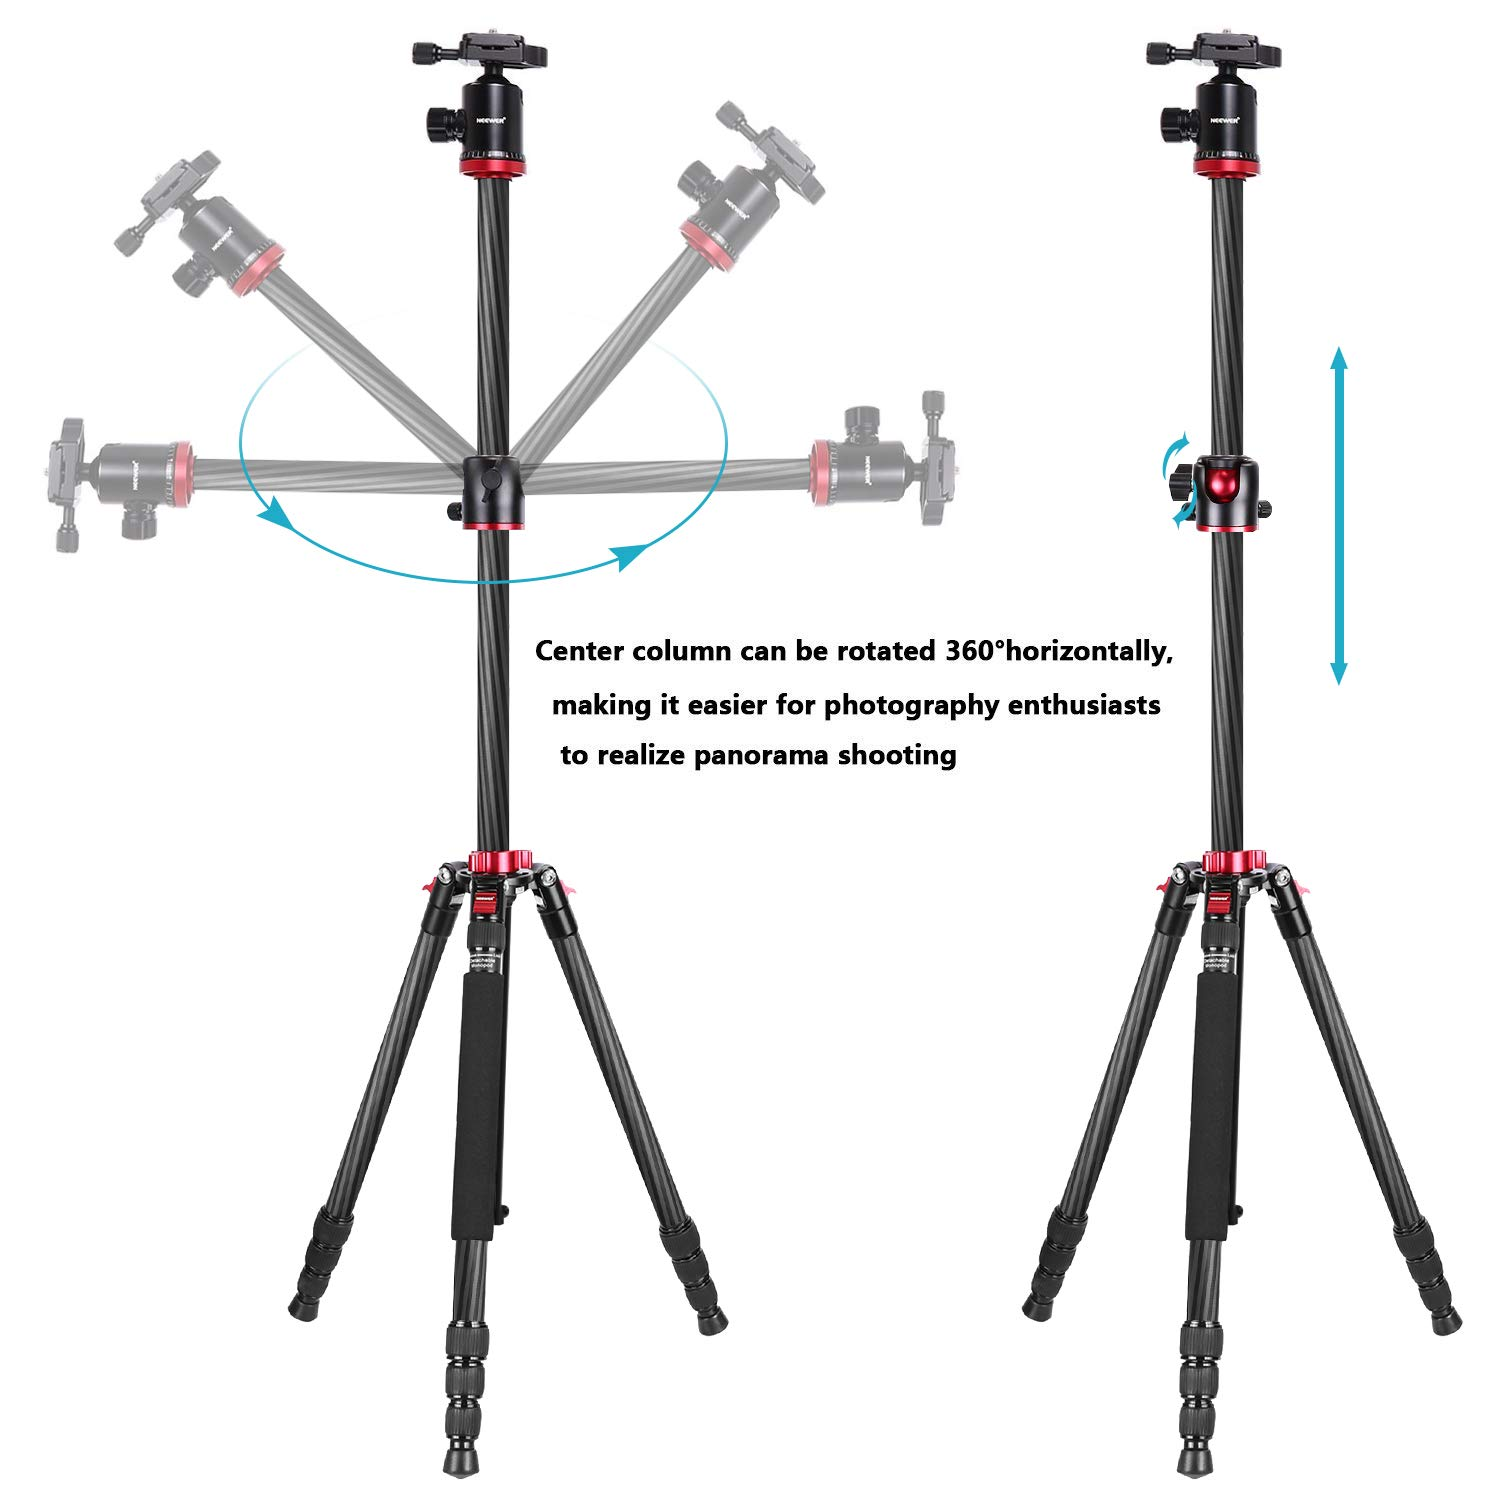 Neewer Camera Tripod Monopod Carbon Fiber with Rotatable Center Column - Portable Lightweight, 75 inches/191 Centimeters, 360 Degree Ball Head for DSLR Camera Camcorder up to 26.5 pounds by Neewer (Image #2)